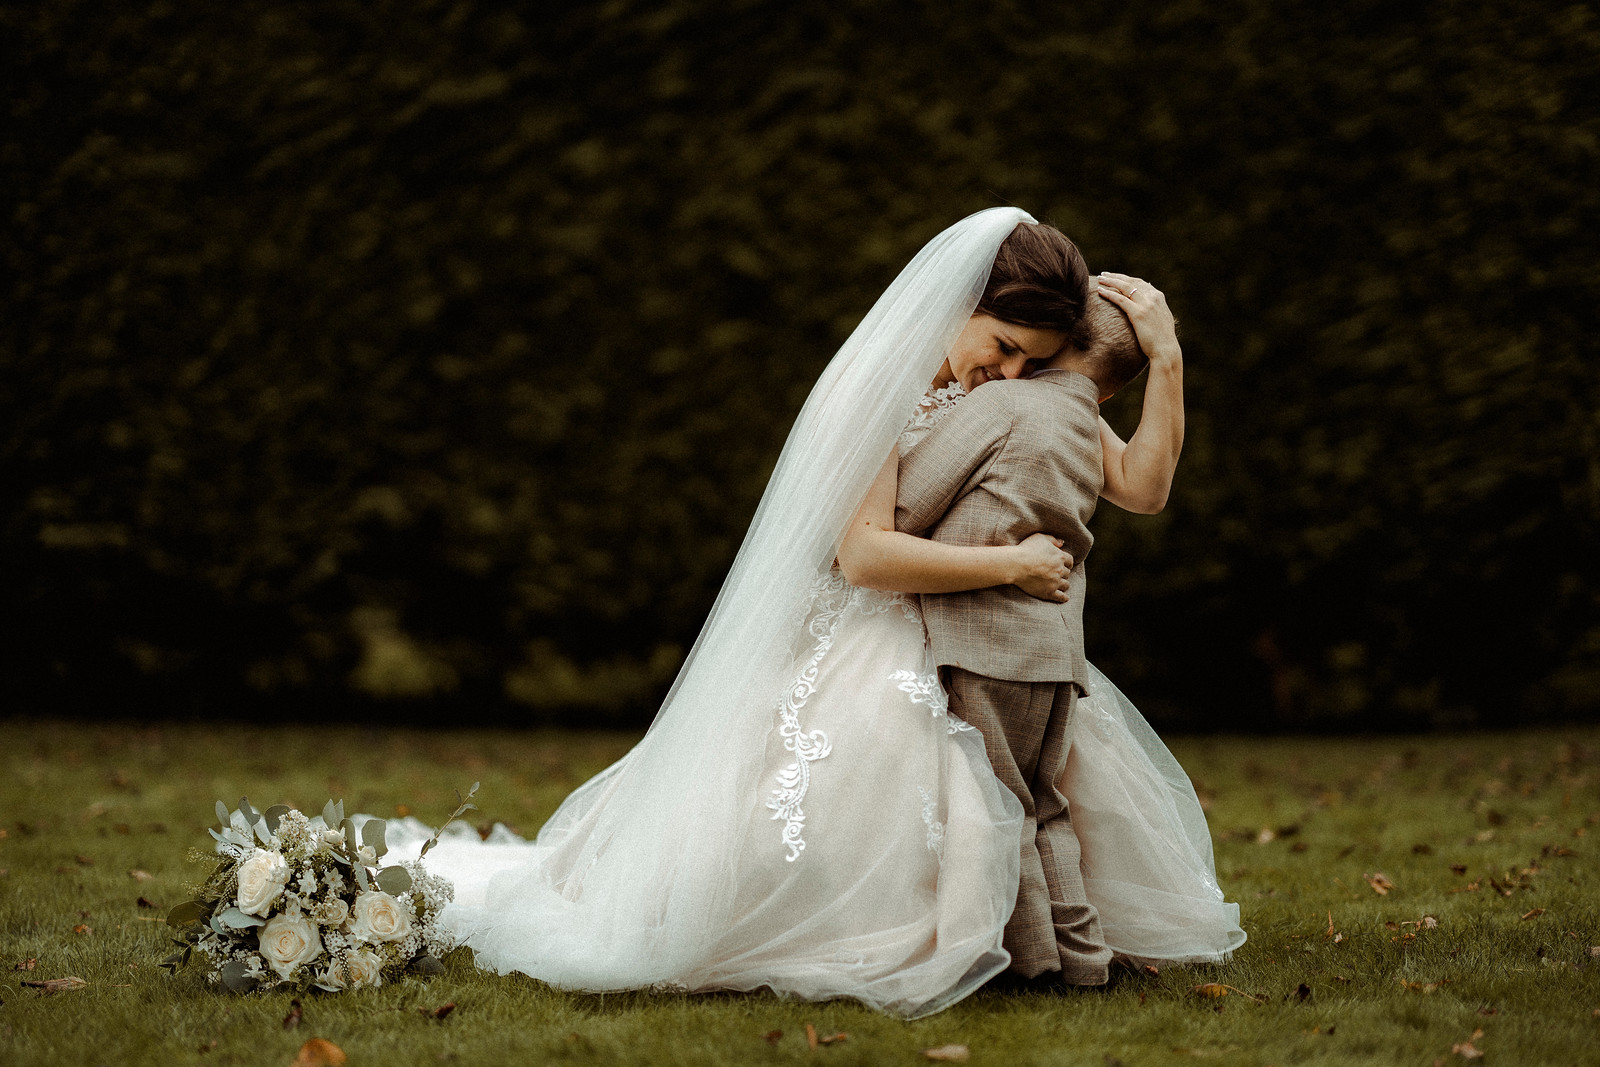 Bride and her son wedding photo